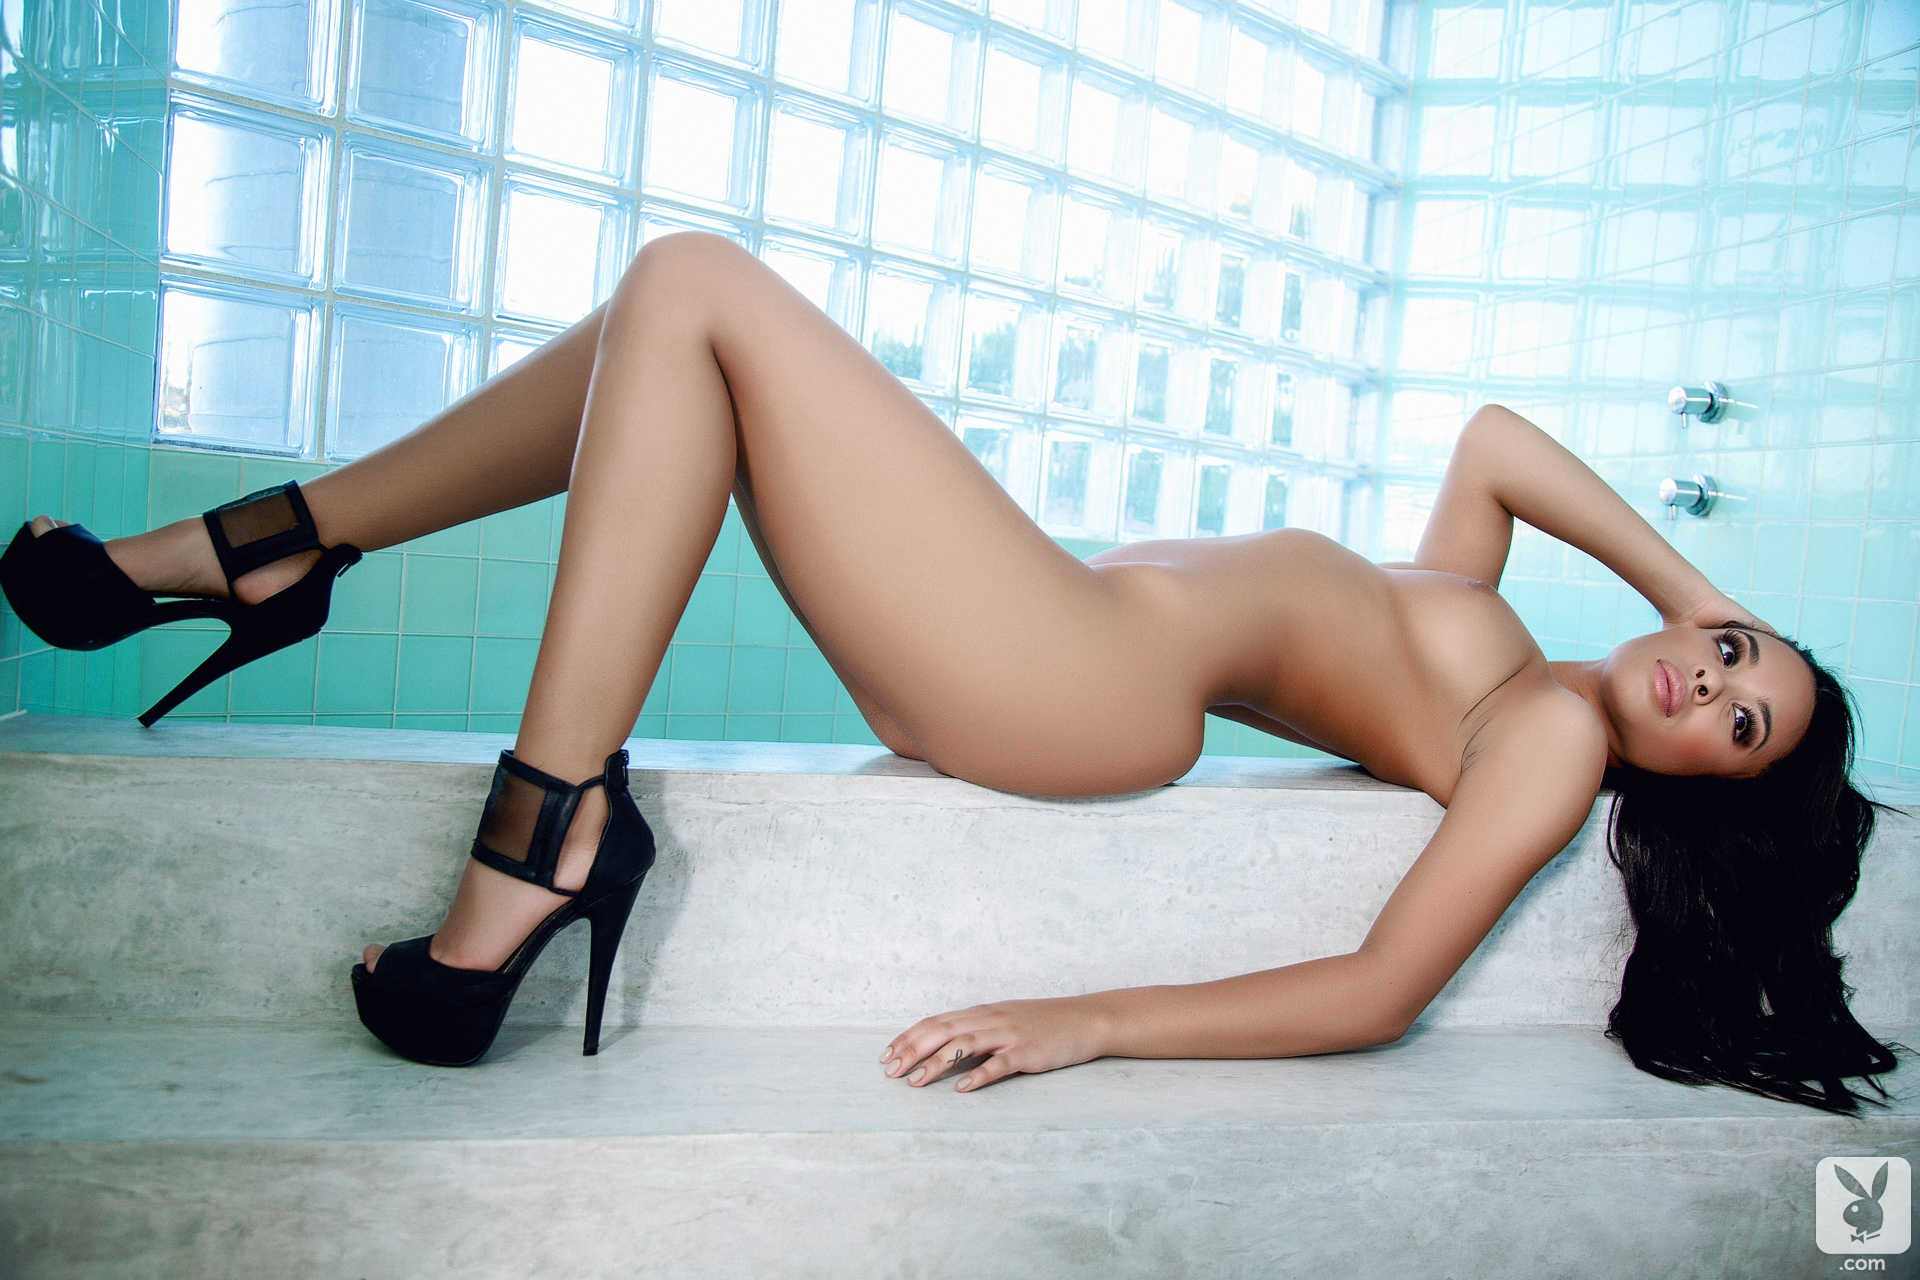 Gracie glam posing in black high heels